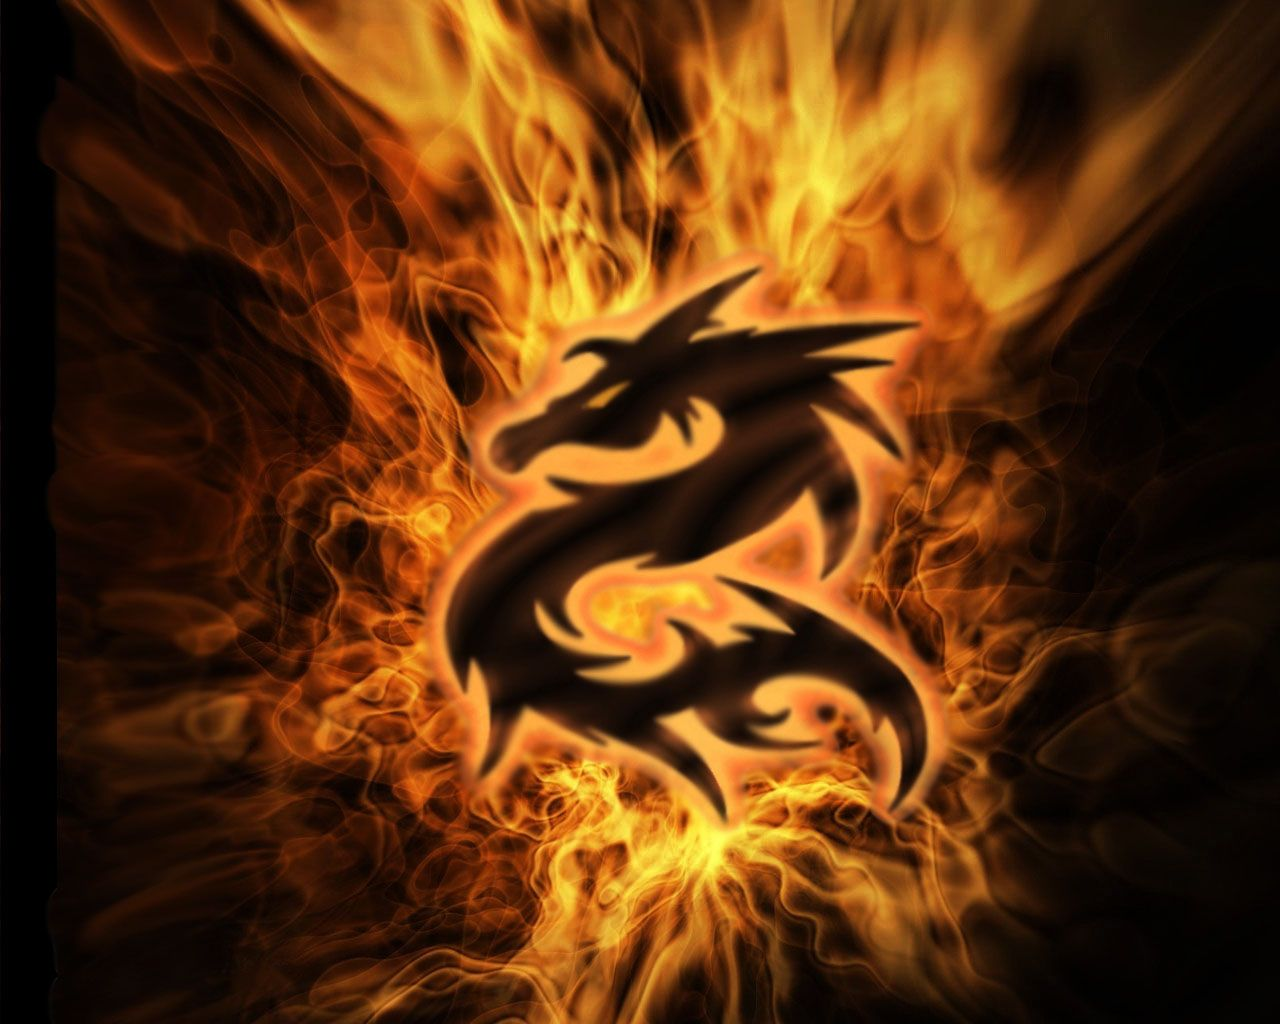 ... Fire 3d Pictures Screensavers Free Wallpapers